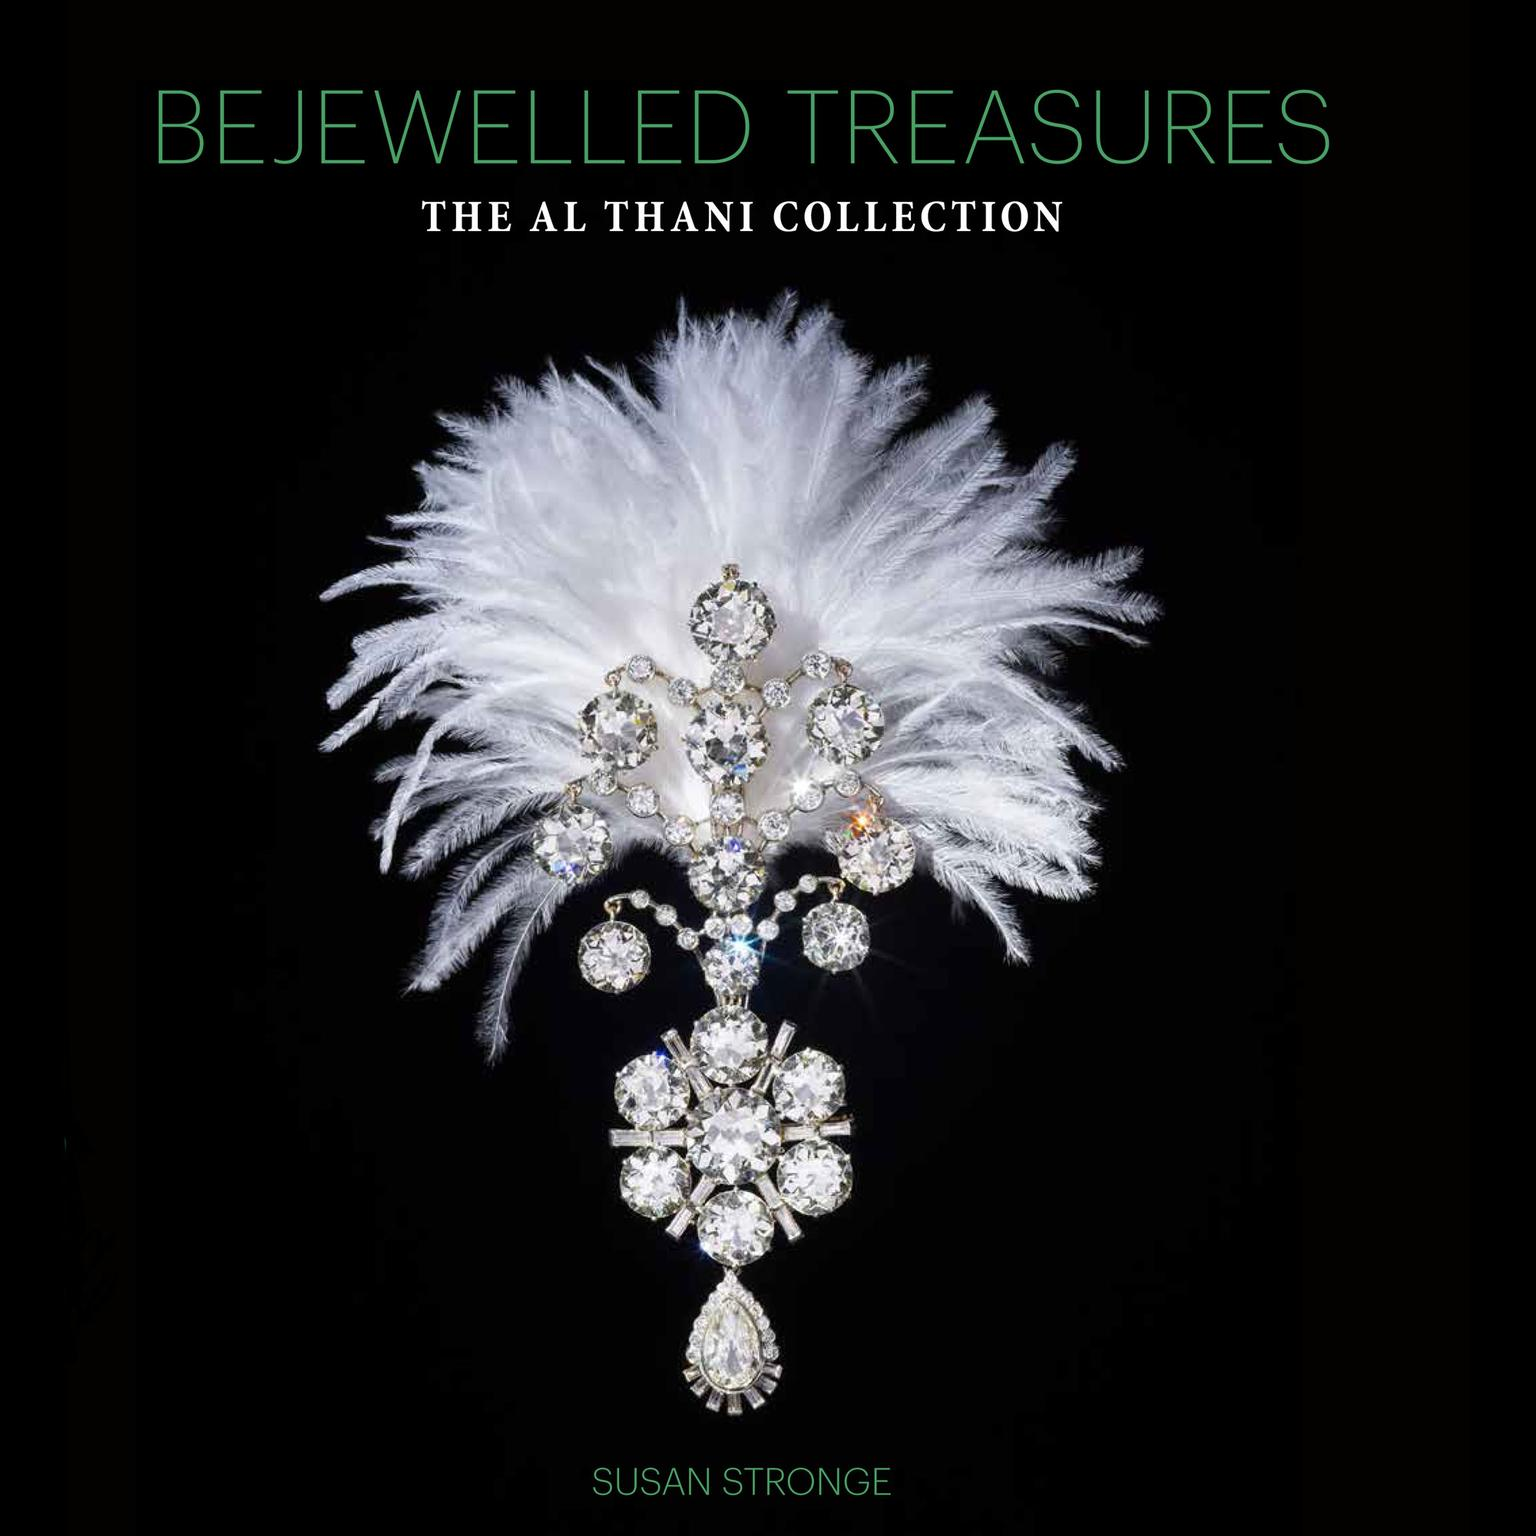 Bejewelled Treasures: The Al Thani Collection, Susan Stronge